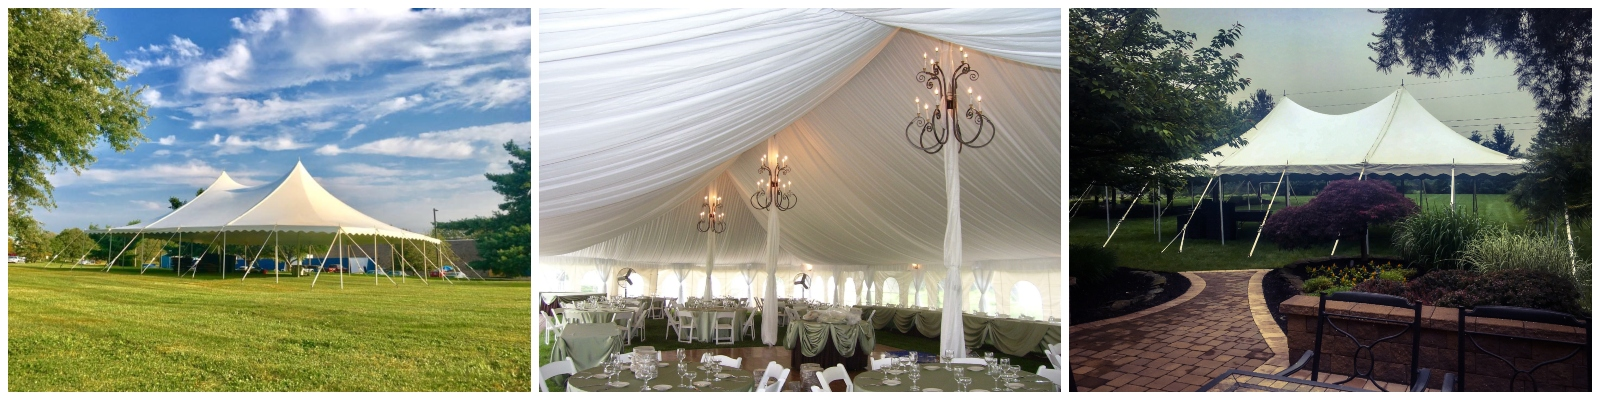 Party Rentals In Harleysville Pennsylvania Rental And Party Supply